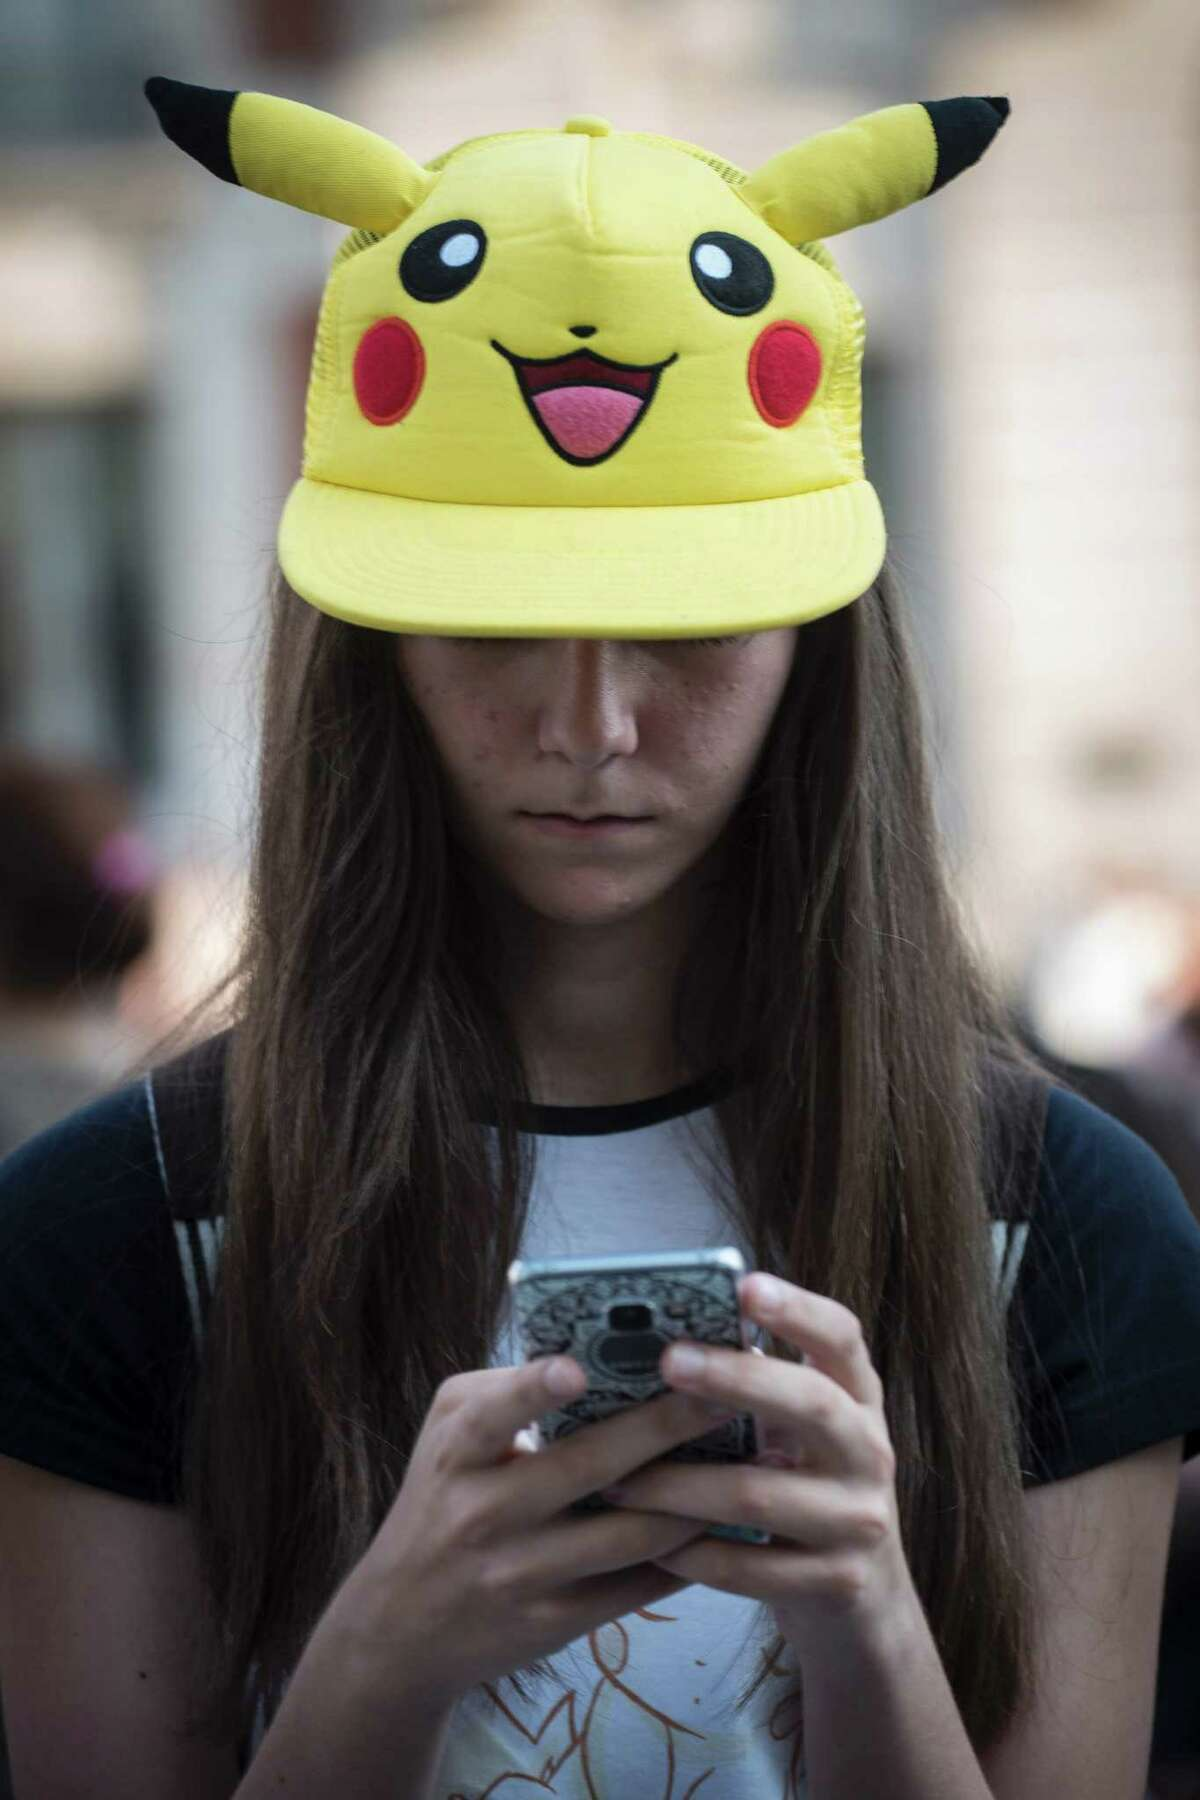 A girl sporting a Pikachu hat uses the